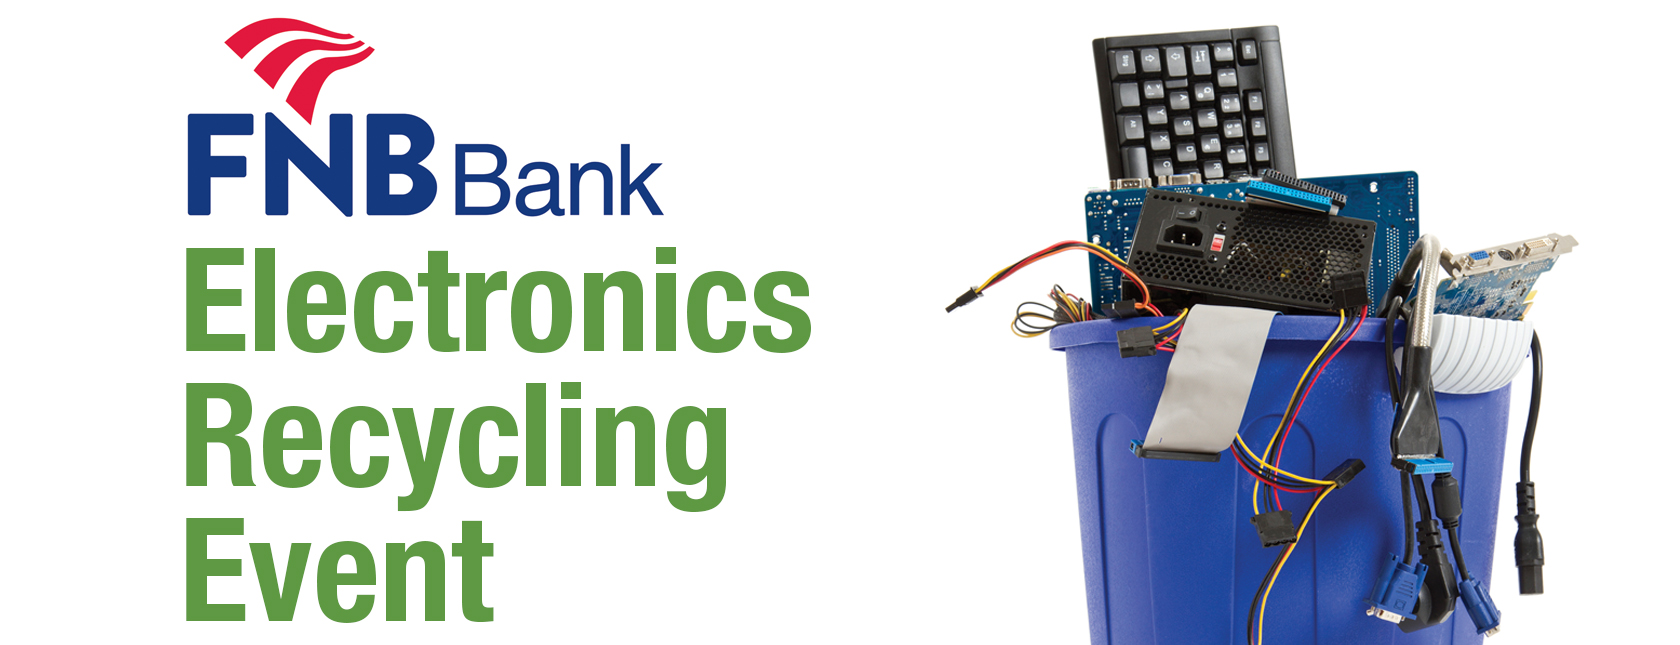 Electronics Recycling Event at FNB Bank on May 4, 2019